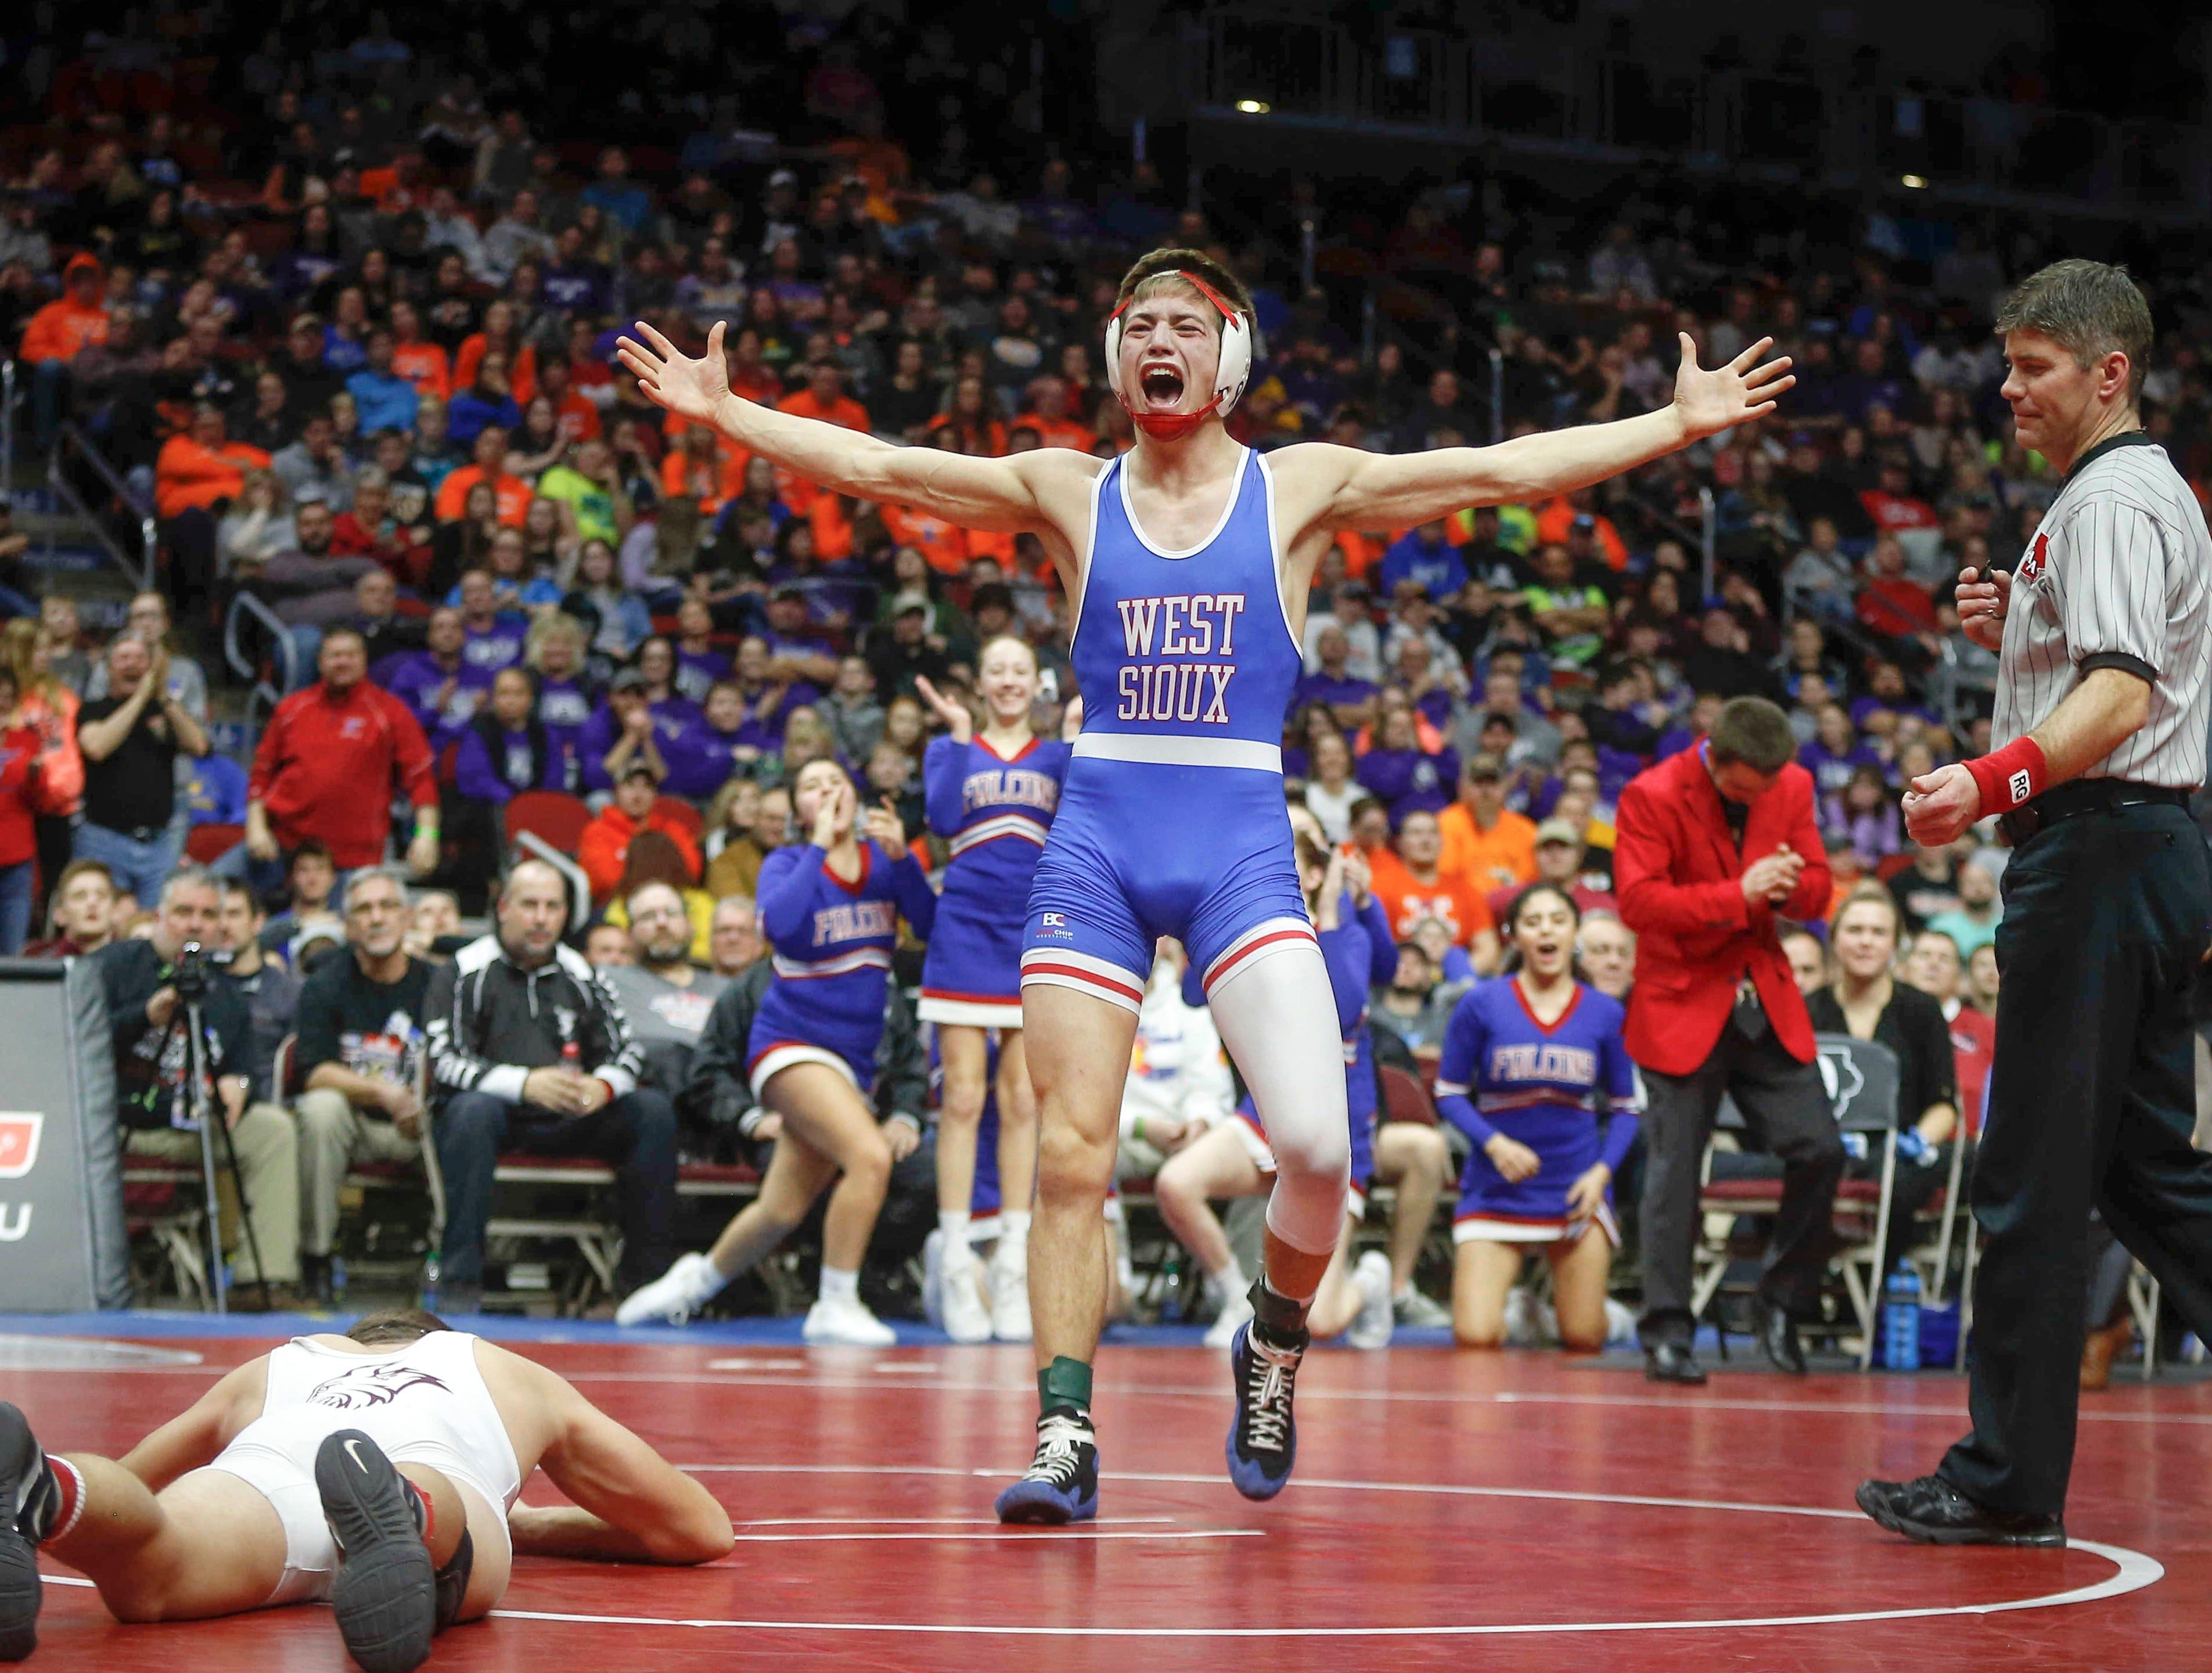 West Sioux senior Kory Van Oort celebrates after beating North Linn senior Brady Henderson in their match at 152 pounds during the state wrestling Class 1A championship on Saturday, Feb. 16, 2019, at Wells Fargo Arena in Des Moines.